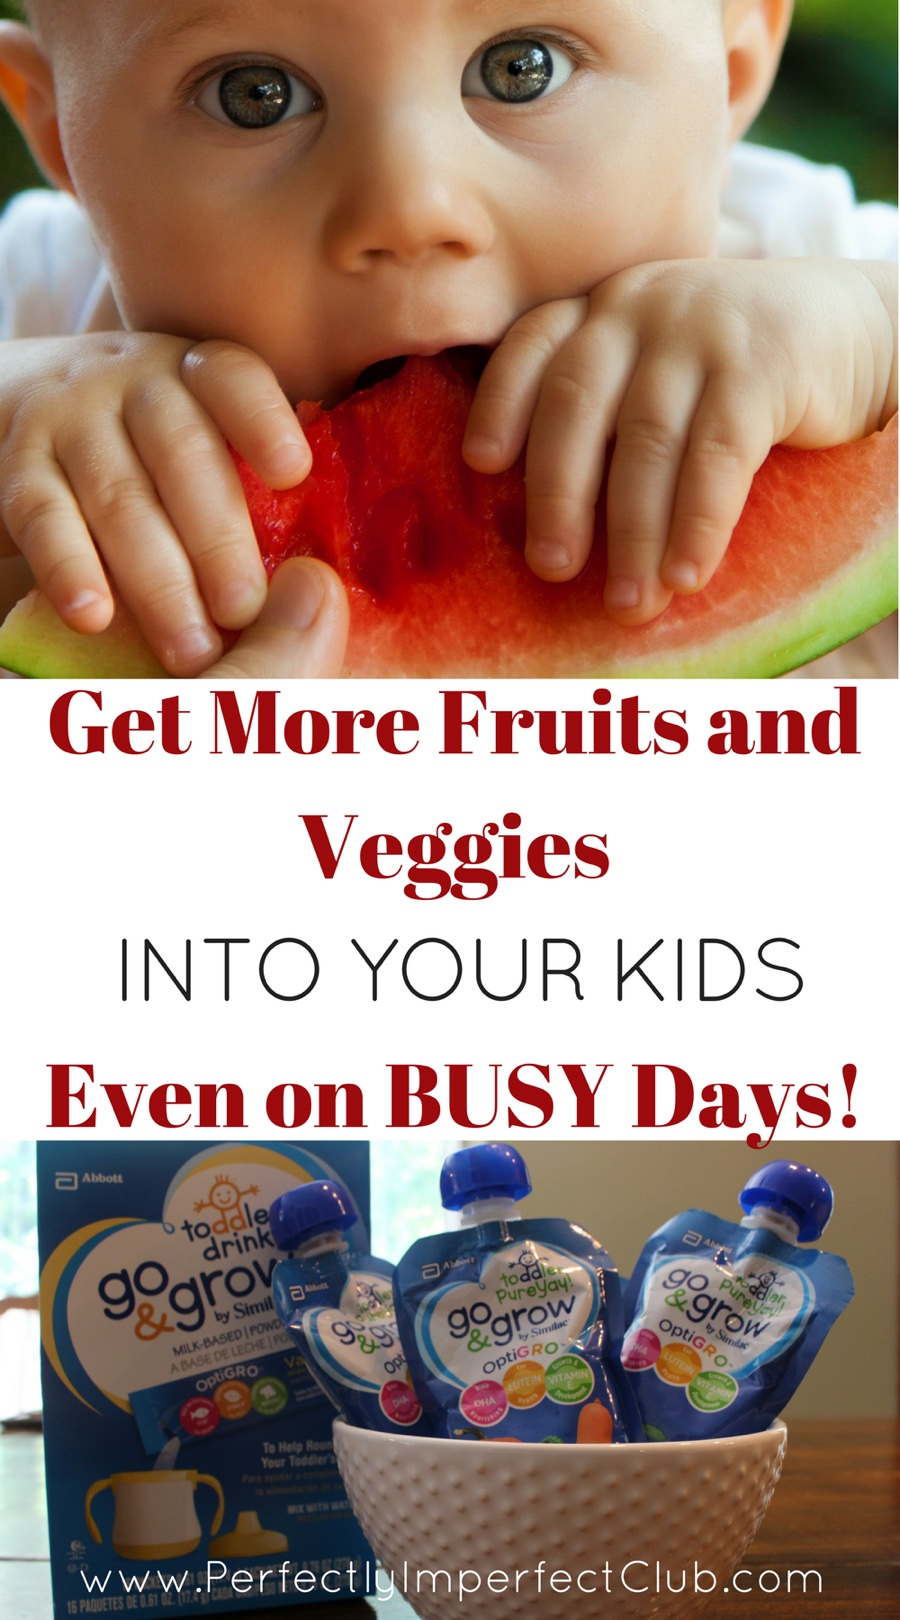 This is how a mother of 9 makes sure her children are getting in their fruits and veggies, even on the busiest days! #GoAndGrowAtWalmart #ad